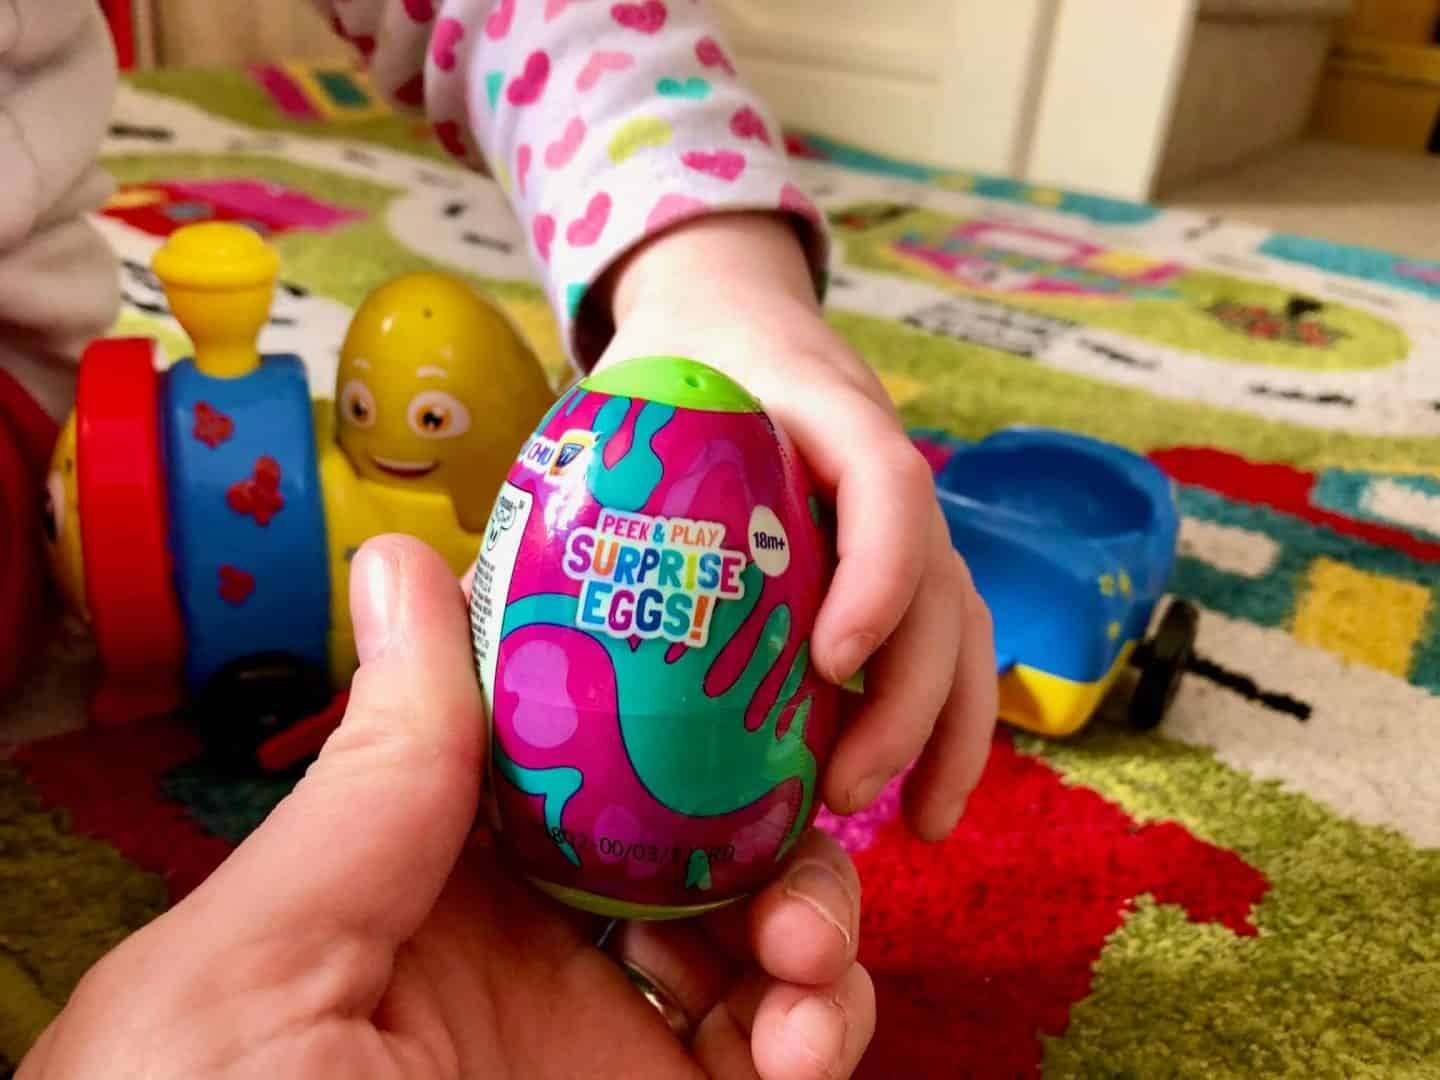 Playing with the Chu Chu TV Peek and Play Surprise Eggs